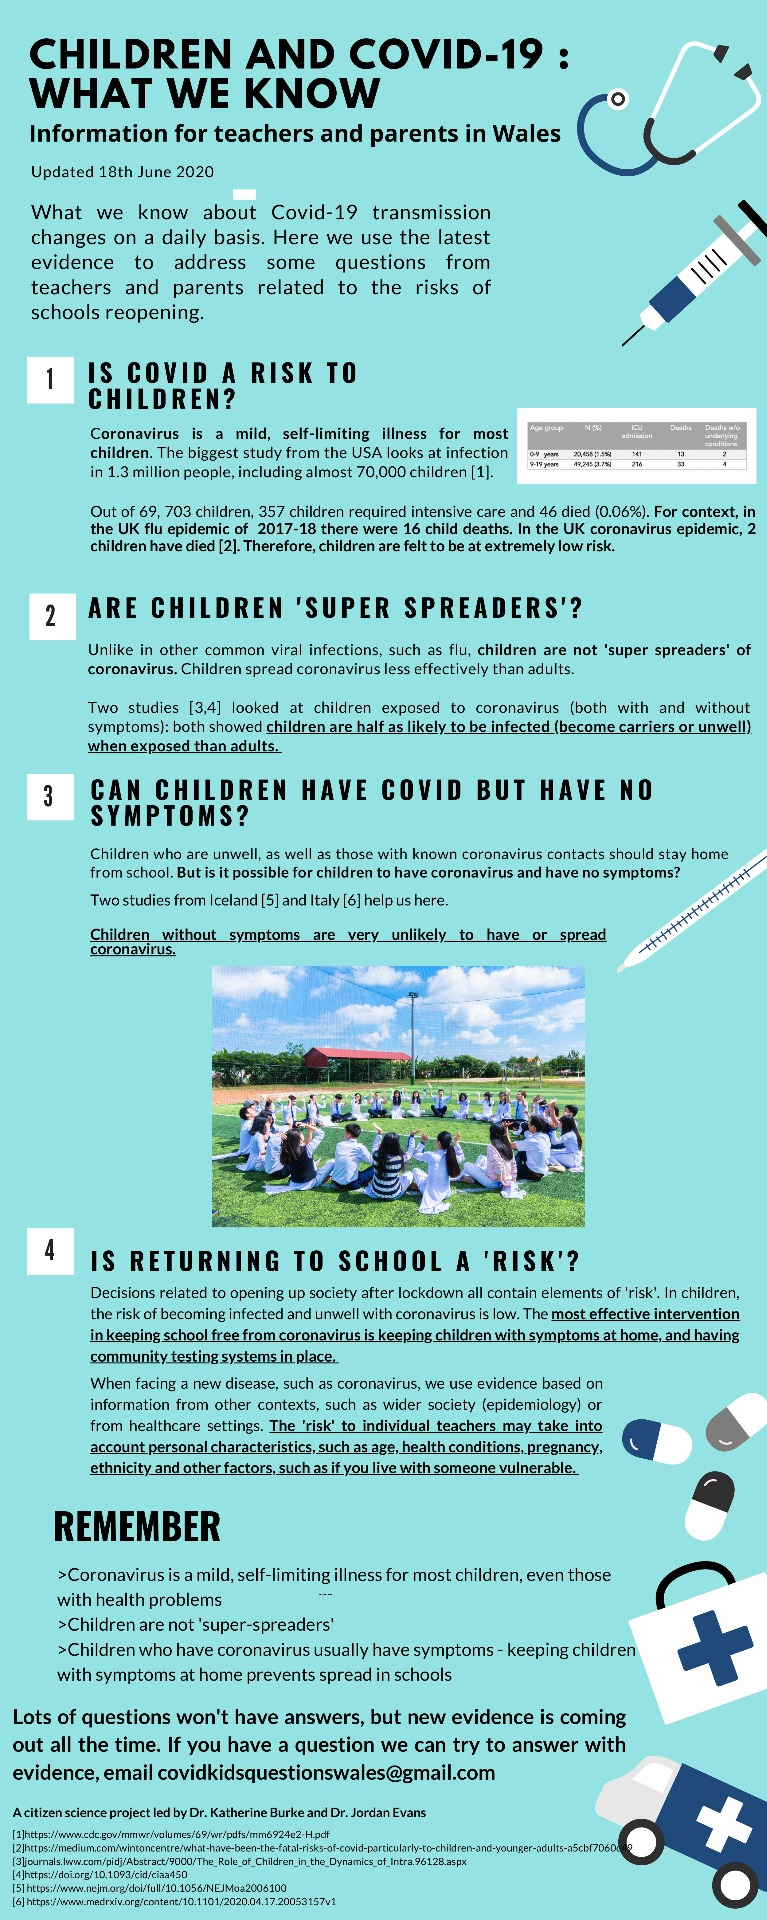 CHILDREN AND COVID-19  WHAT WE KNOW Information for teachers and parents